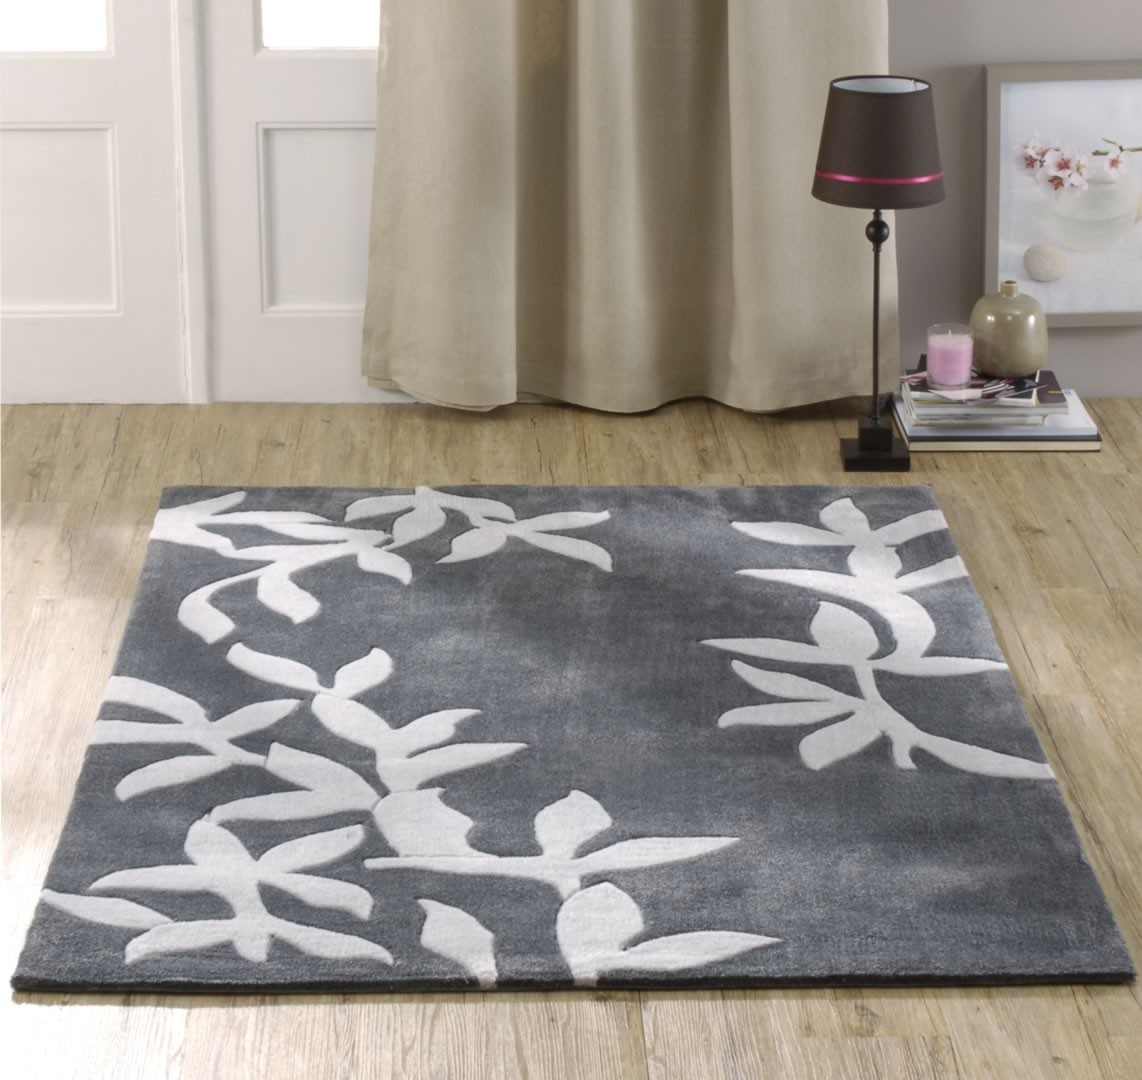 Tapis Pour Salon Gris Tapis De Salon Pin Tapis Rouge On Pinterest Emejing